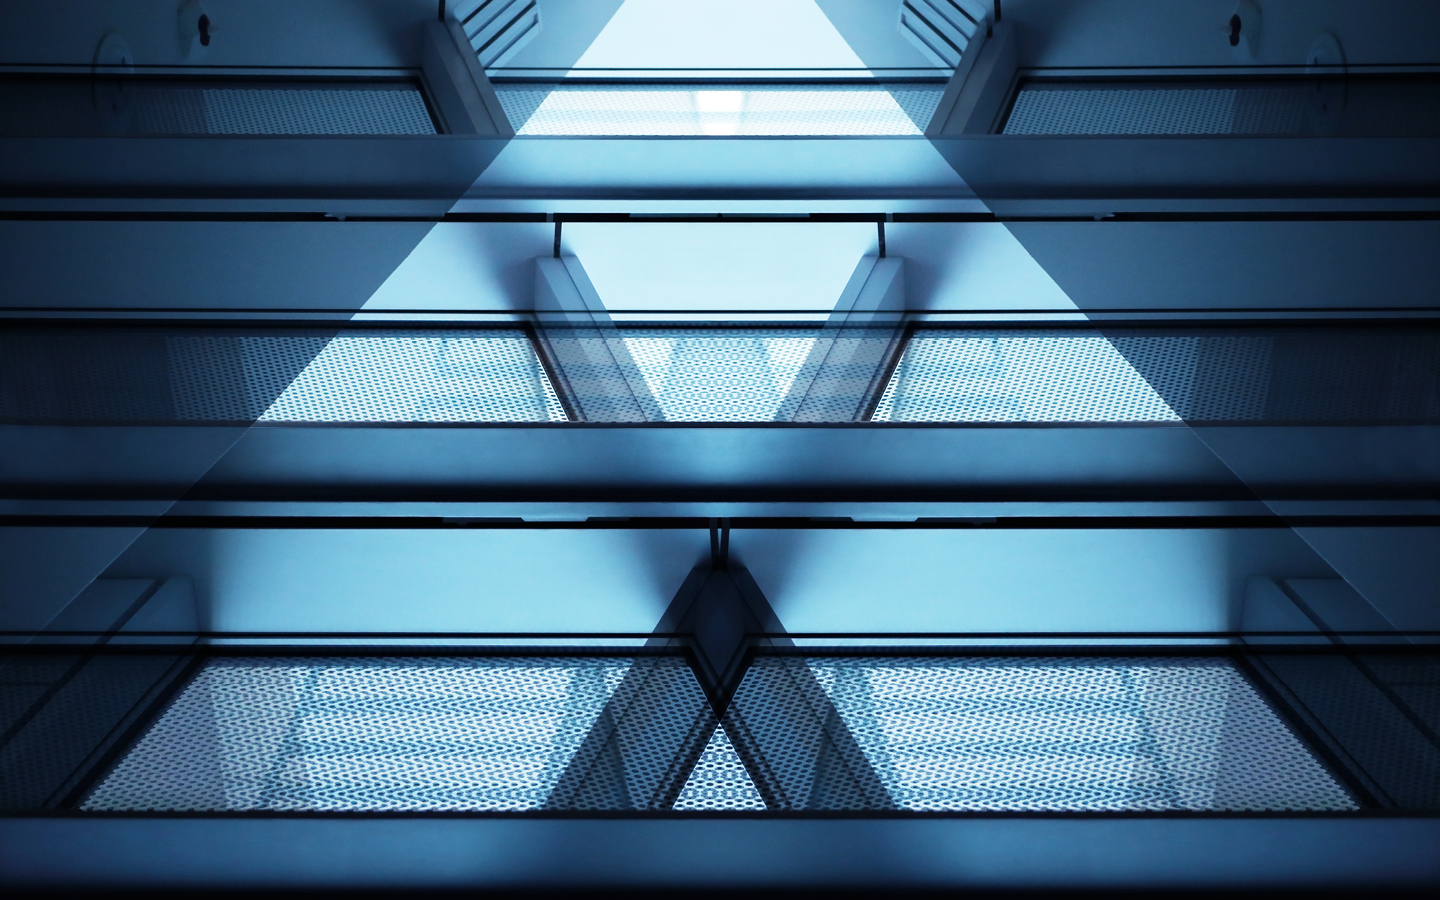 Images of glass panes aligning in a V shape